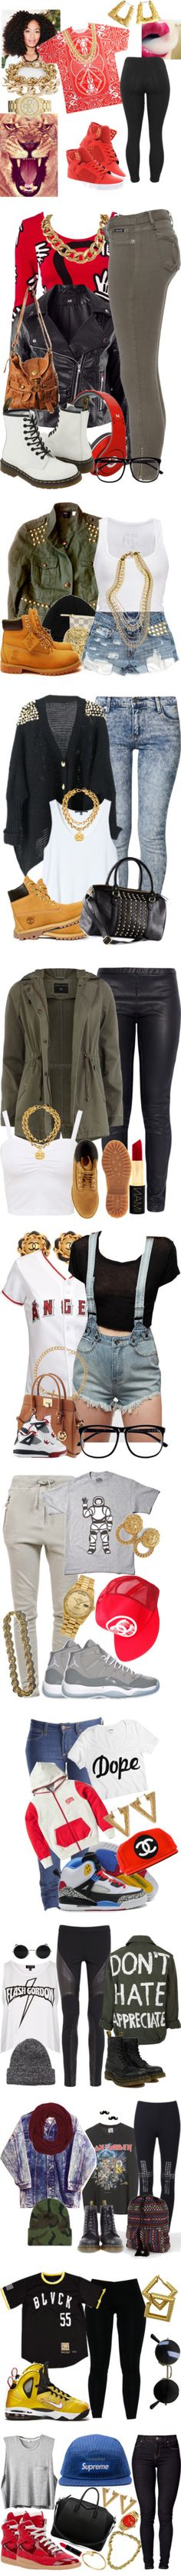 """""""swag"""" by mrkr-lawson ❤ liked on Polyvore"""